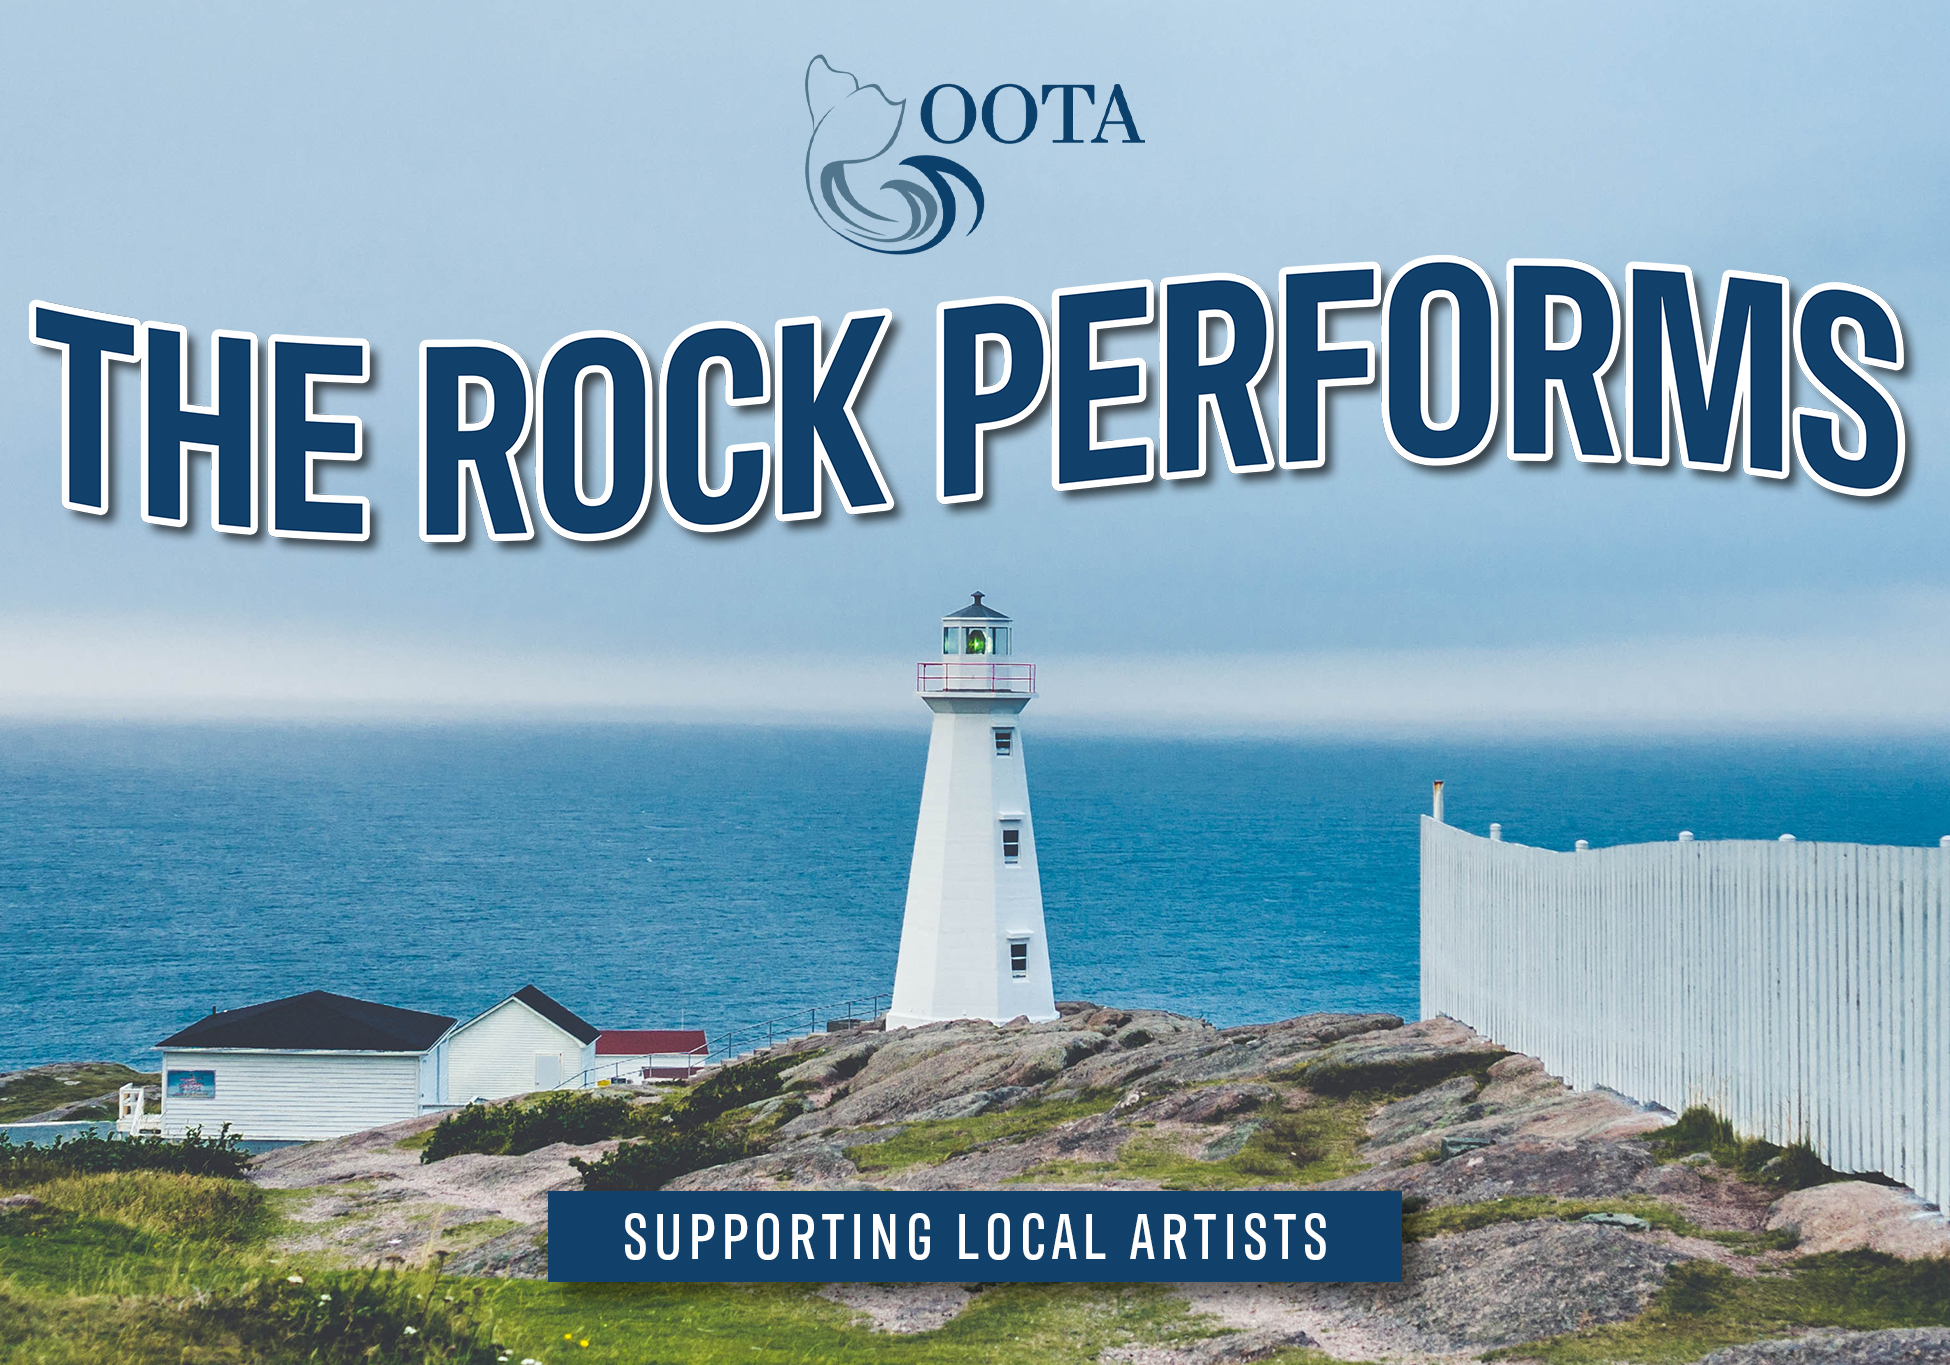 OOTA-Rock-Performs-Slider